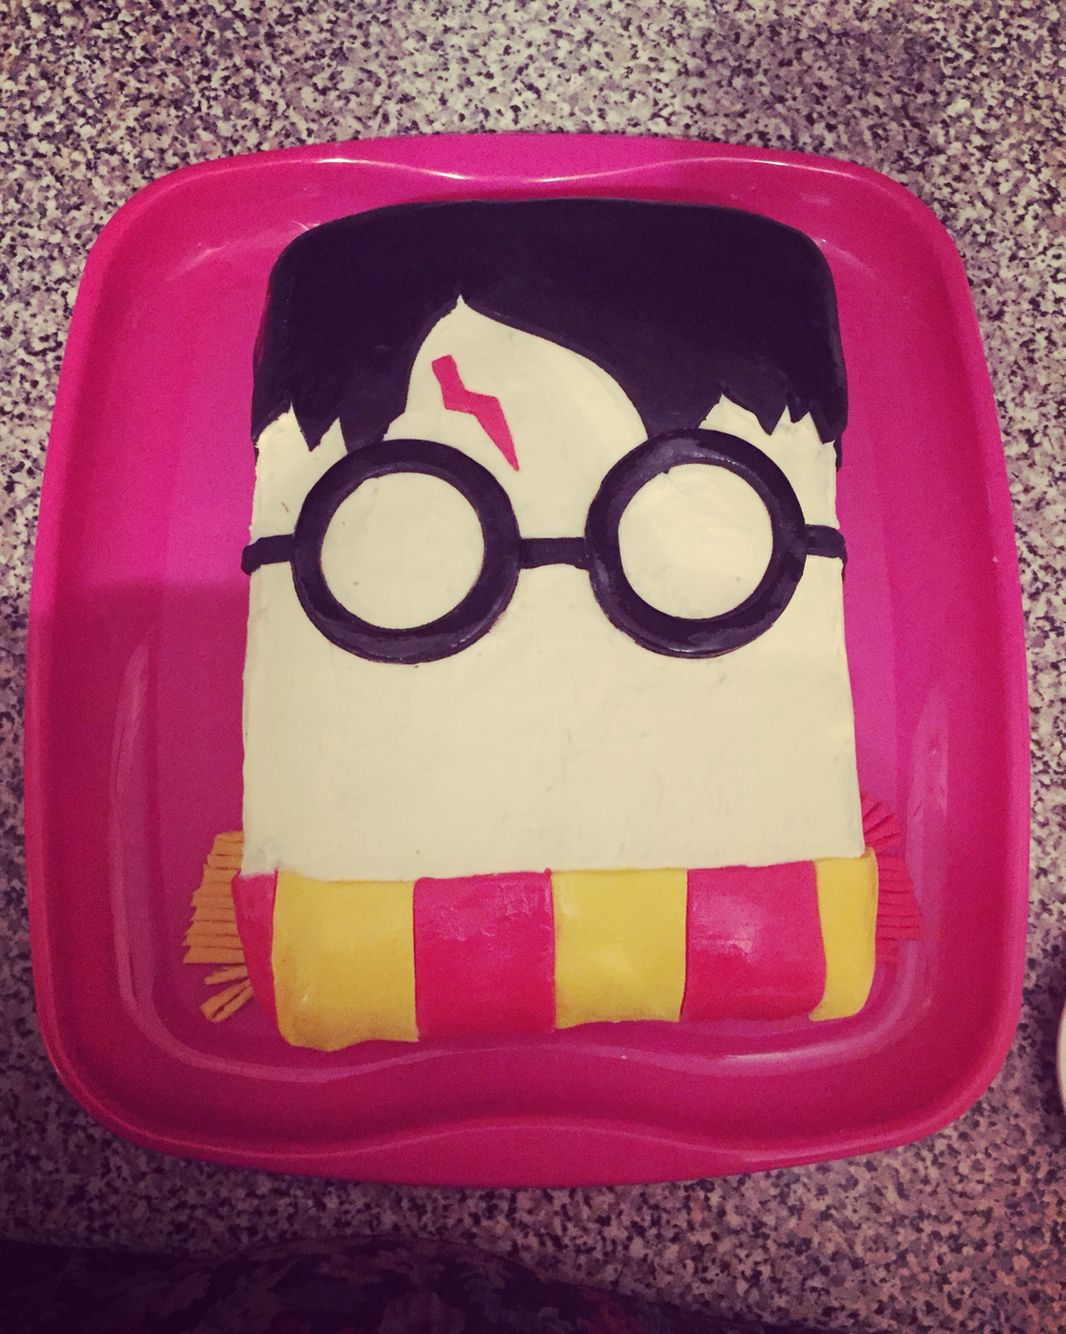 This Is My Simple Harry Potter Cake